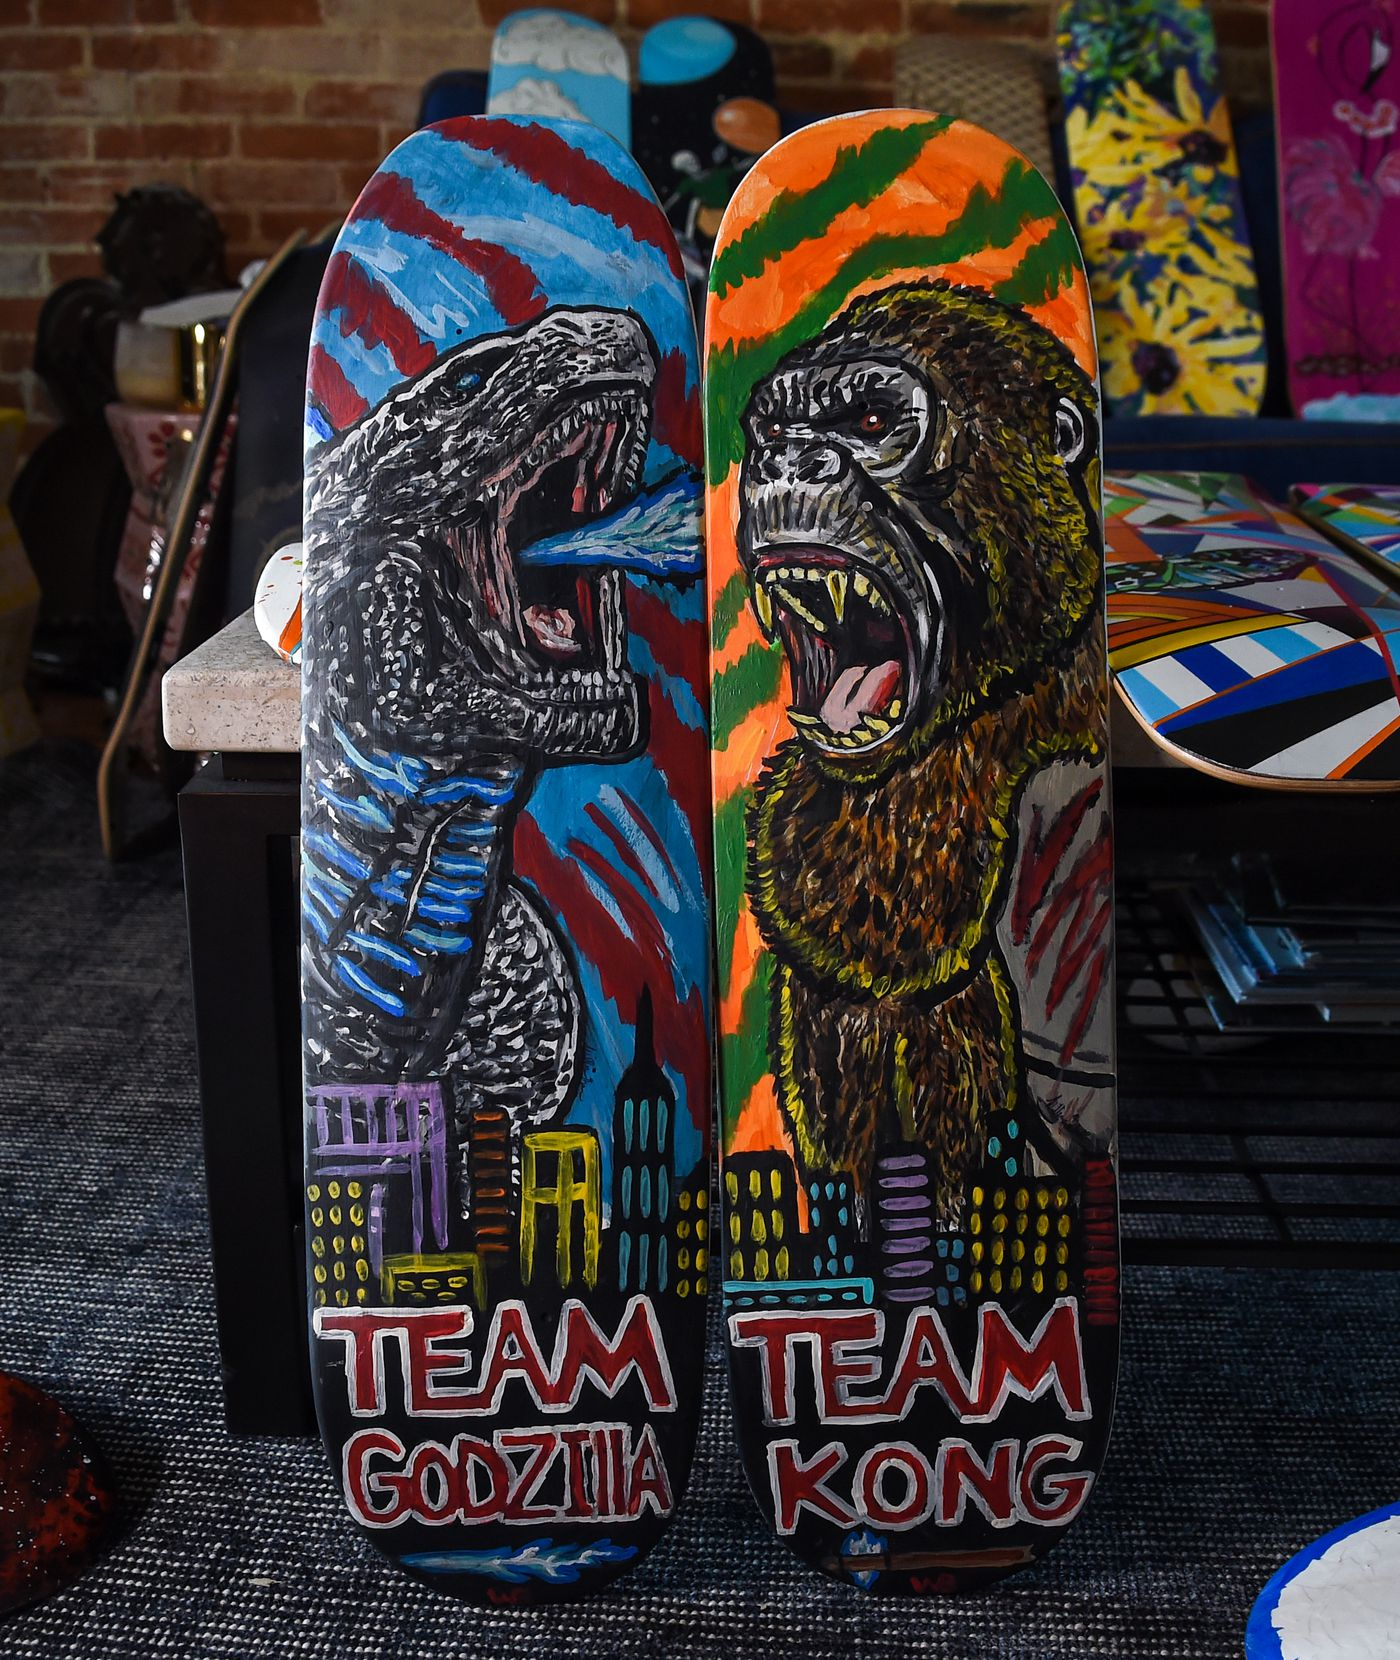 Skateboard decks featuring images of Godzilla and King Kong by Will Brown (IG: @artistwillbrown) sit in the living room of Cindy Conklin on Wednesday, April 7, 2021; the art pieces will be auctioned off to help fund the completion of Jake's Skate Park at Rash Field.